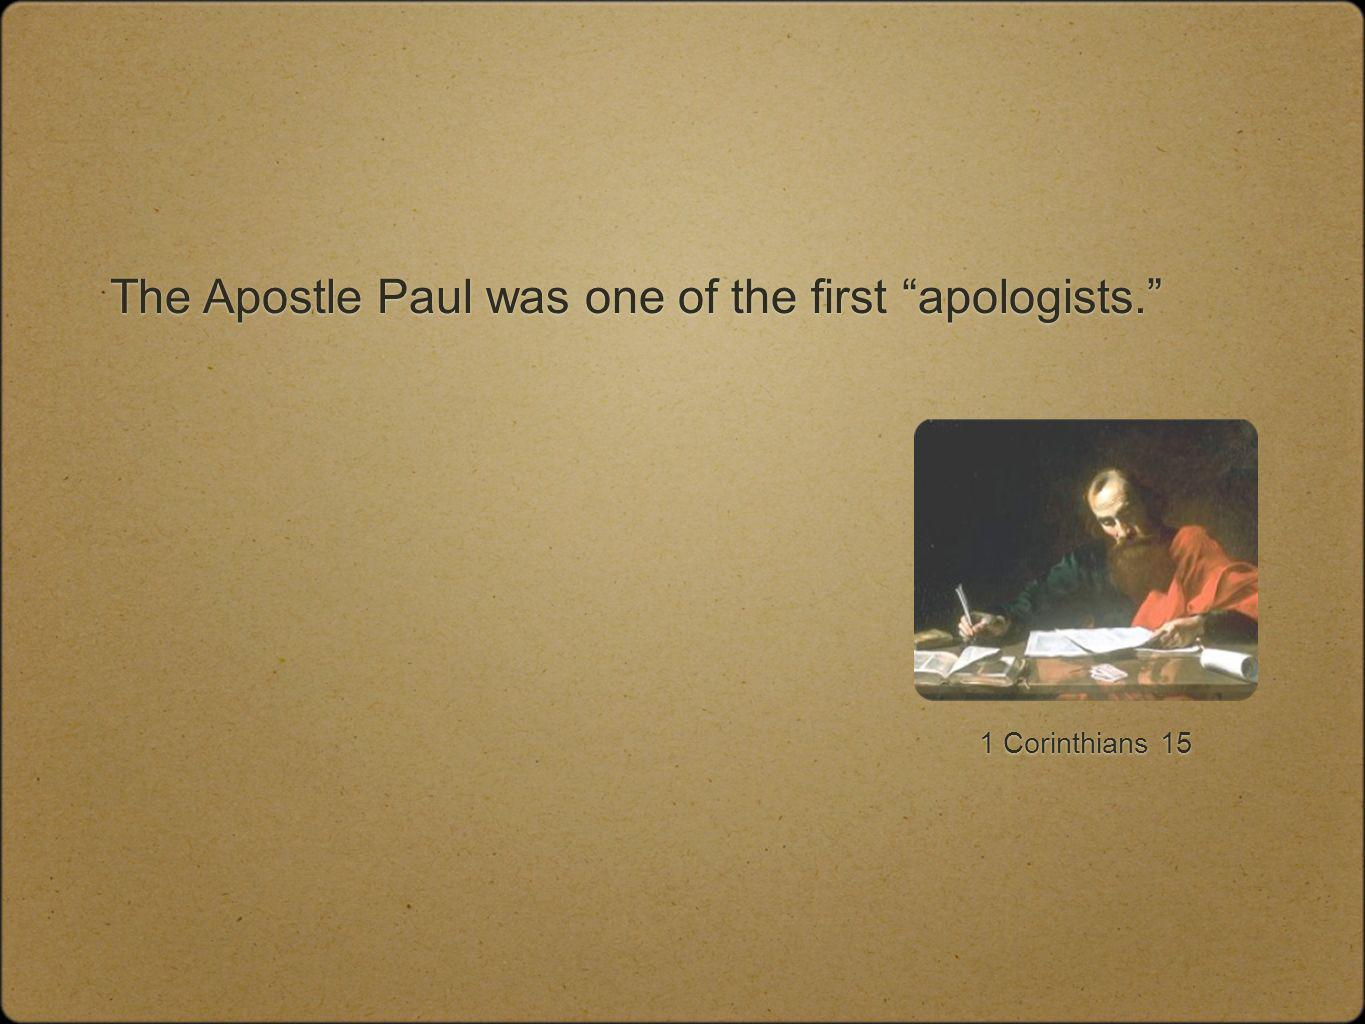 The Apostle Paul was one of the first apologists. 1 Corinthians 15